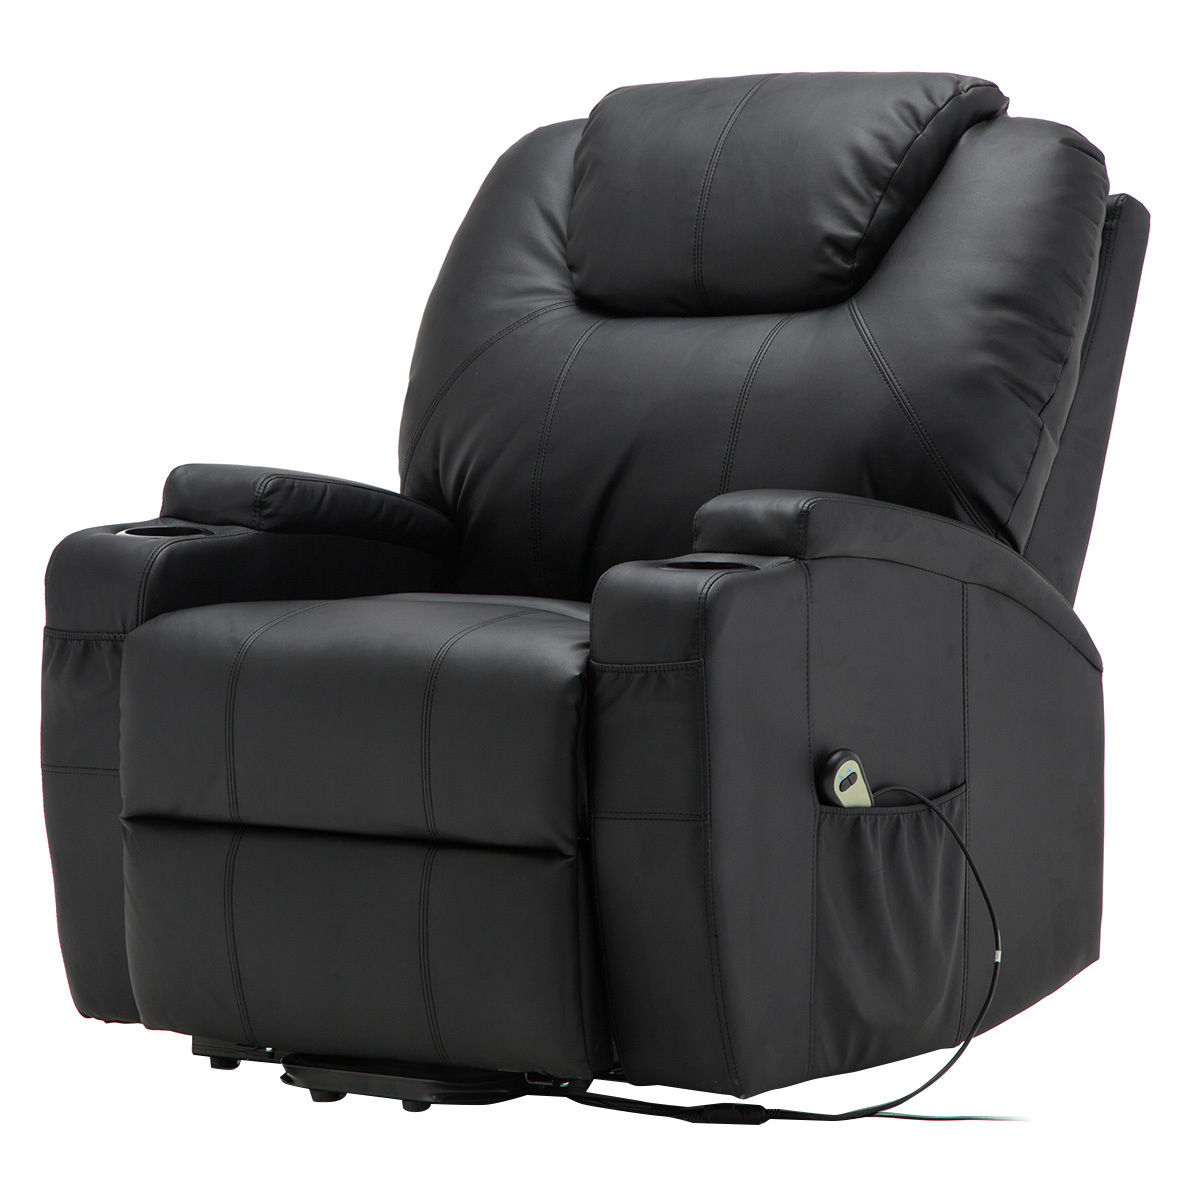 Giantex Electric Lift Power Recliner Chair Heated Massage Sofa Throughout Preferred Sofa Chair Recliner (Gallery 11 of 20)